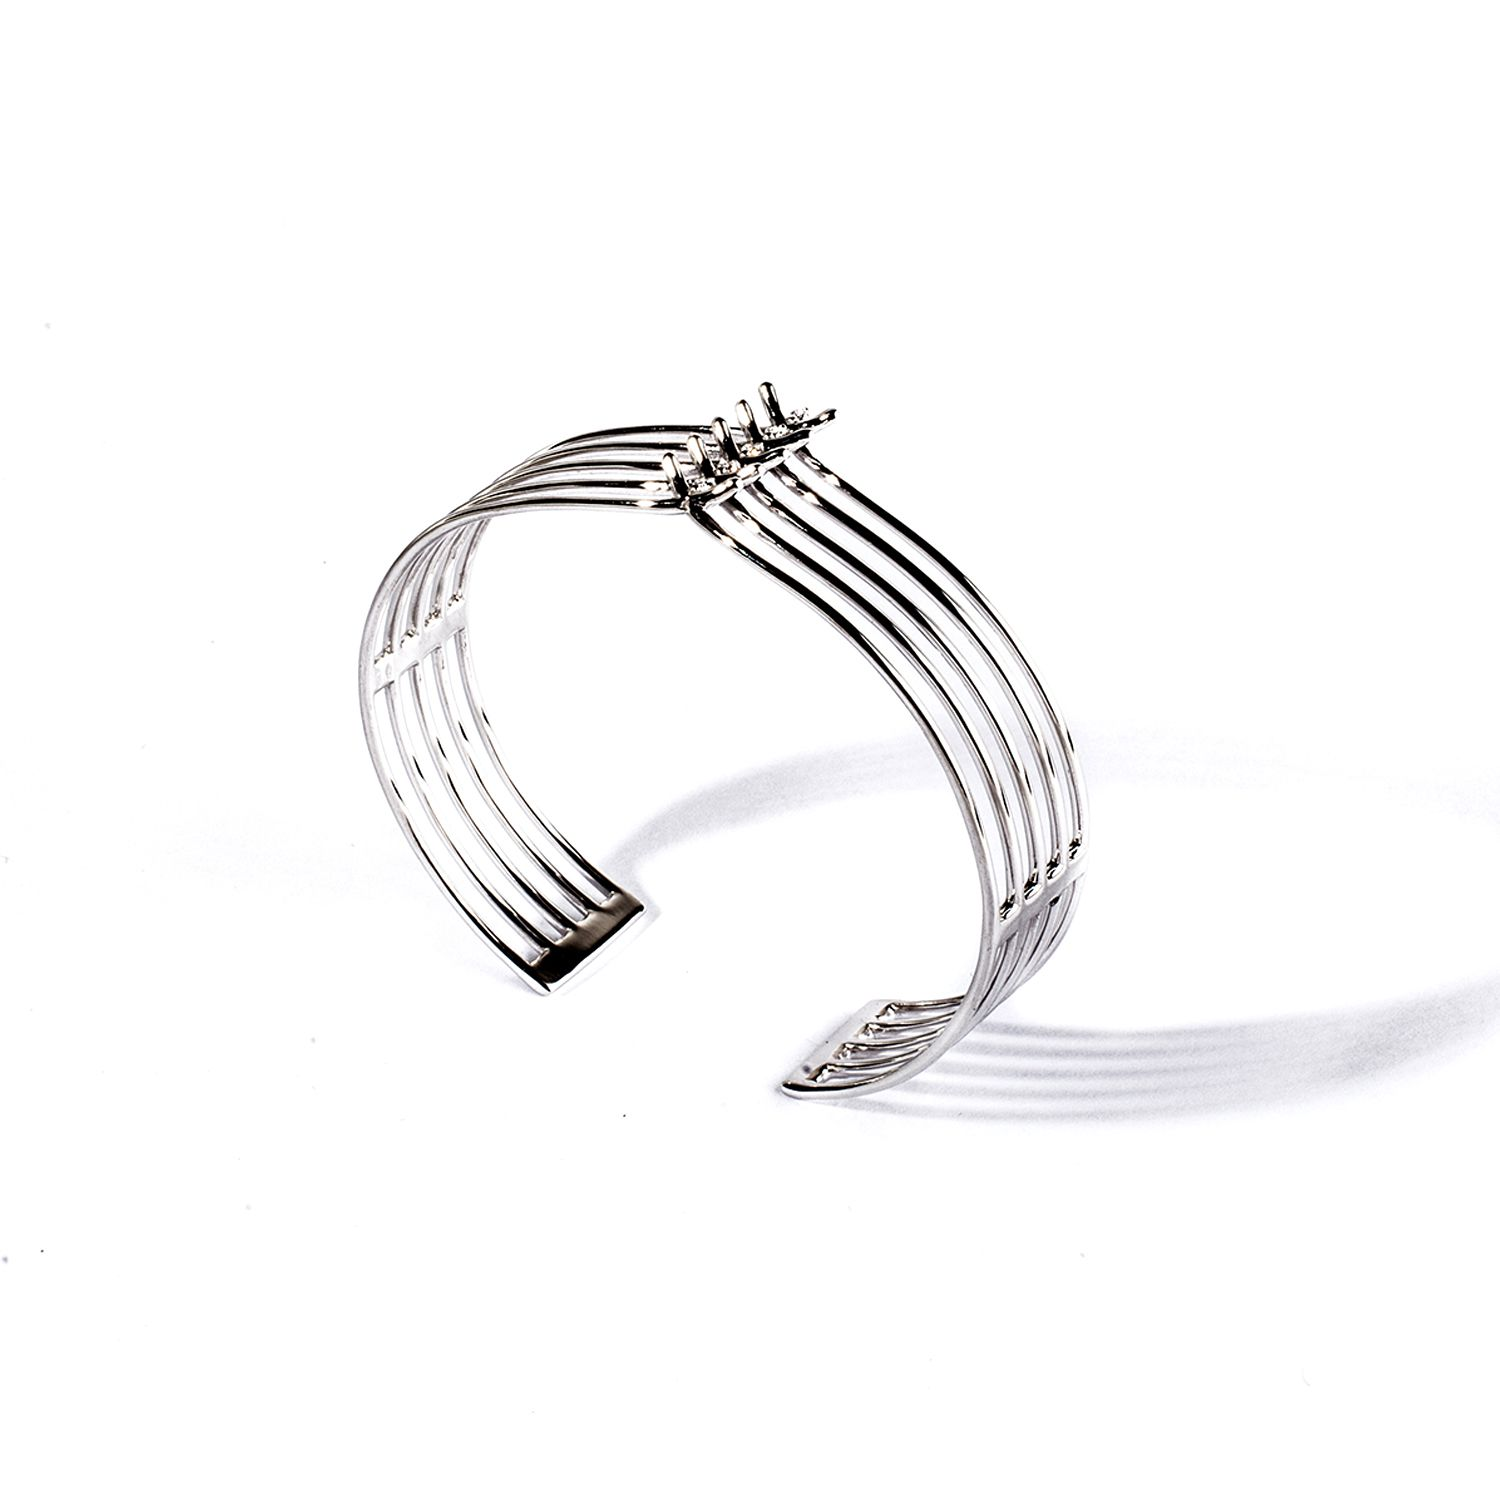 5 element 'Spinae' bracelet White gold bracelet